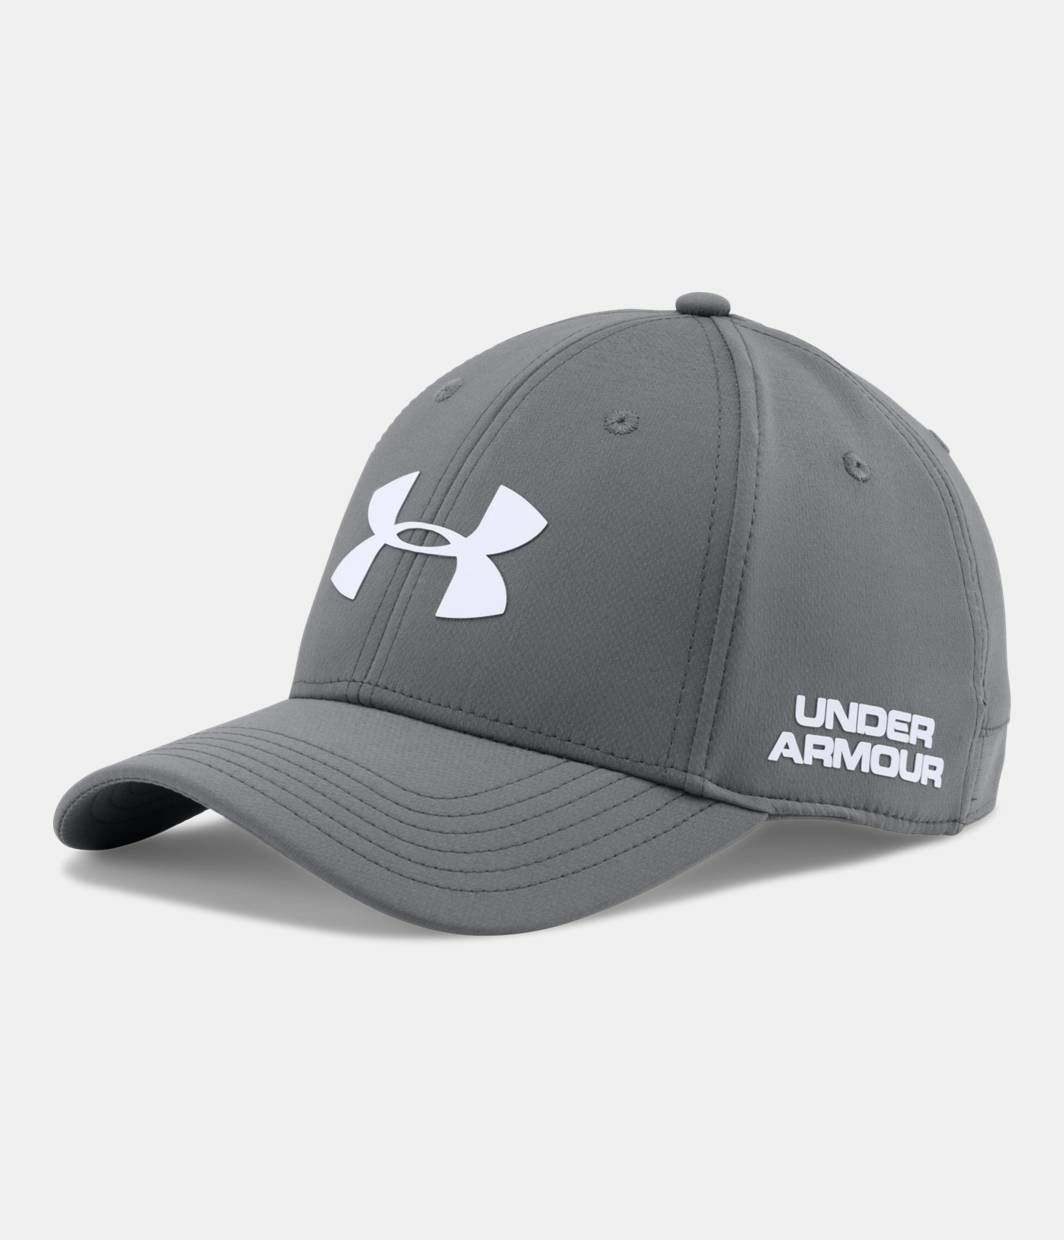 Under Armour Golf Headline Grey Cap